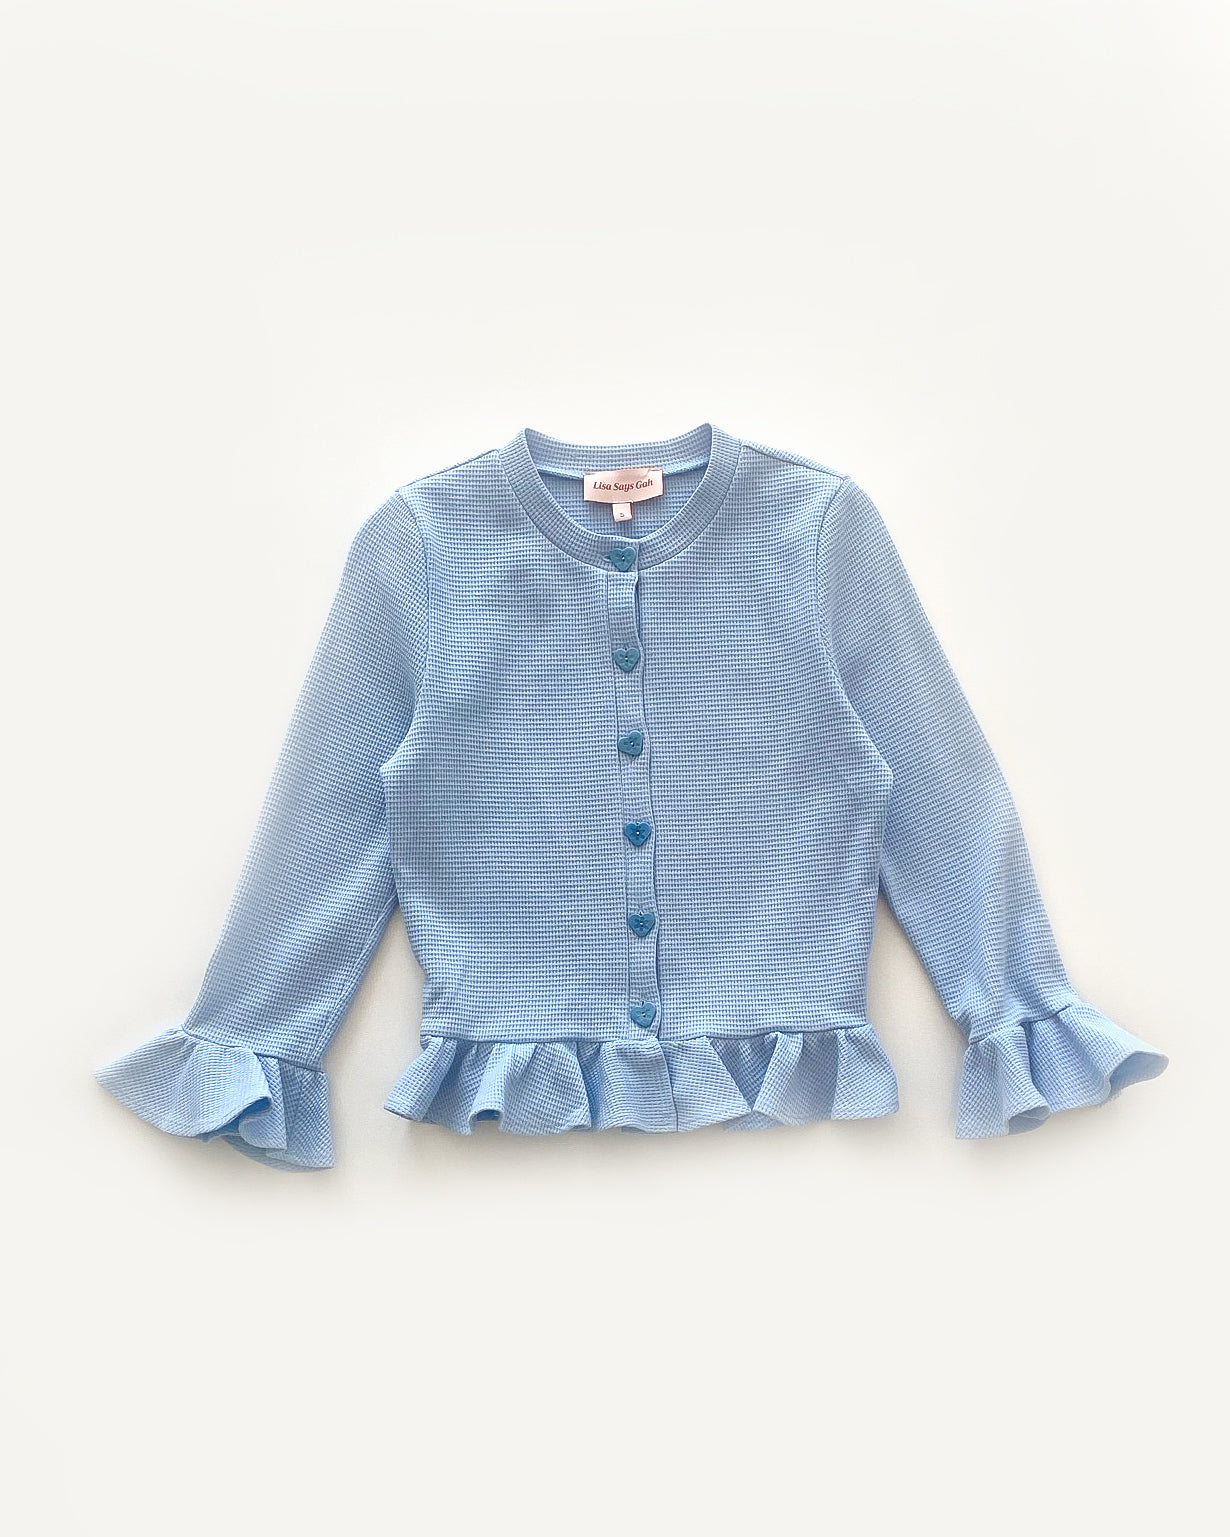 LSG X KJPlumb | Olivia Top in Cornflower Blue